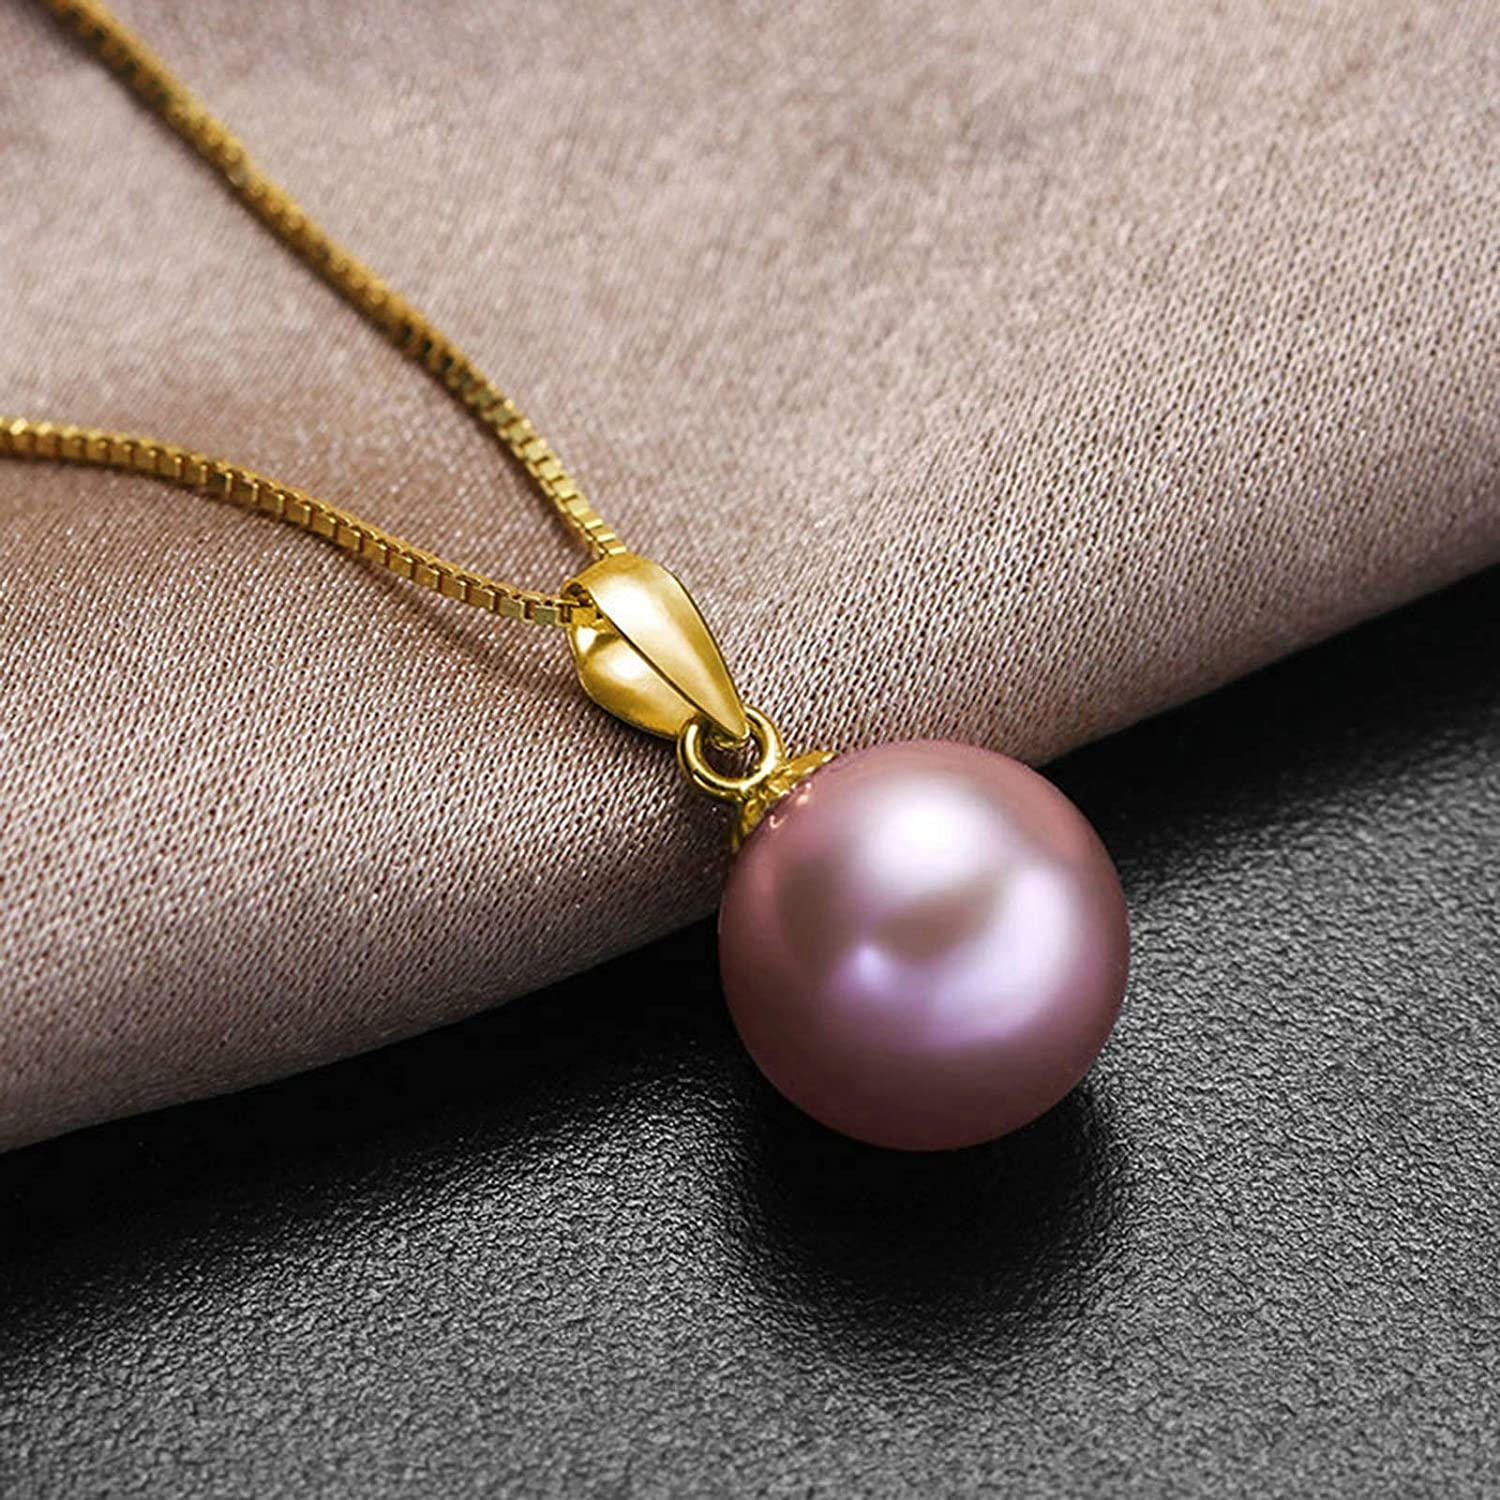 Aooaz Gold Plated Necklace Women Girl Hollow Round Pendant Necklace Rose Gold Wedding